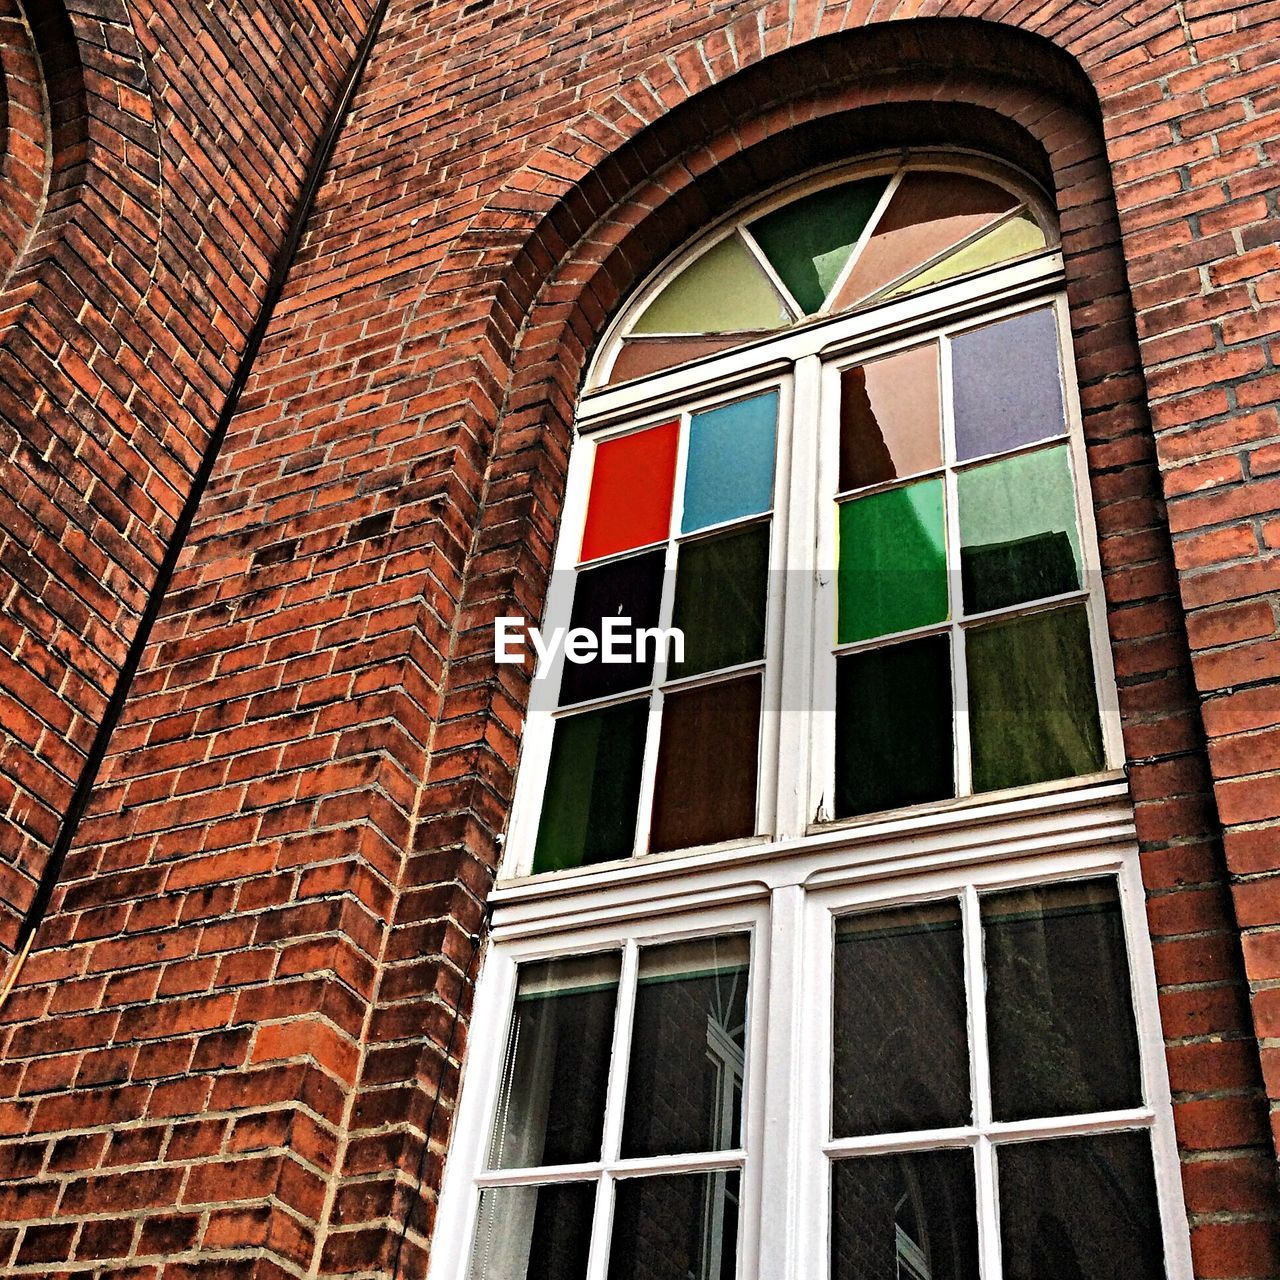 window, building exterior, architecture, low angle view, built structure, brick wall, day, no people, outdoors